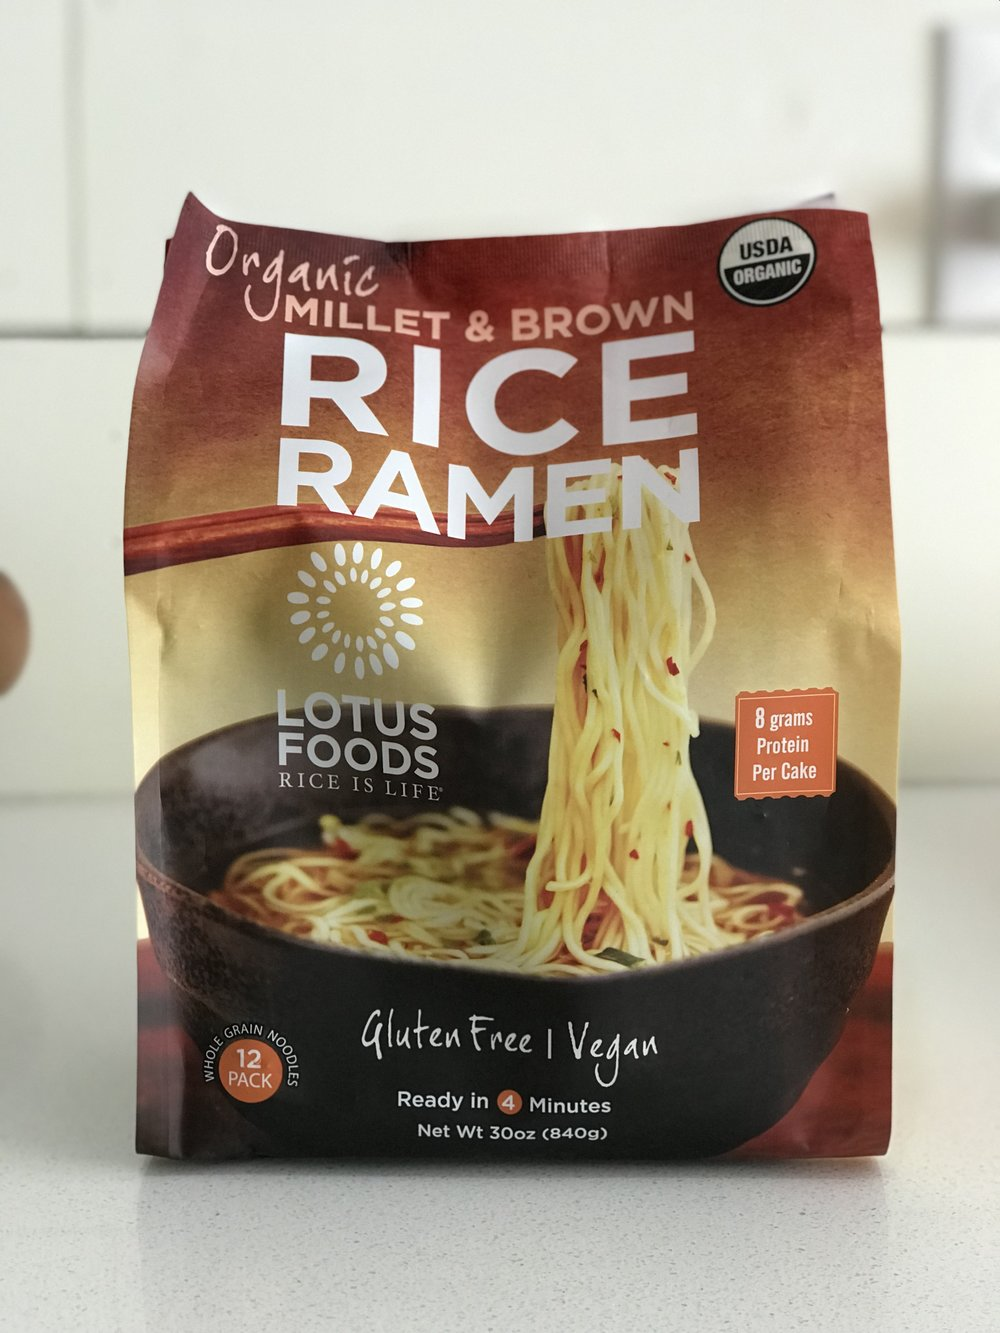 The rice ramen I love to use.